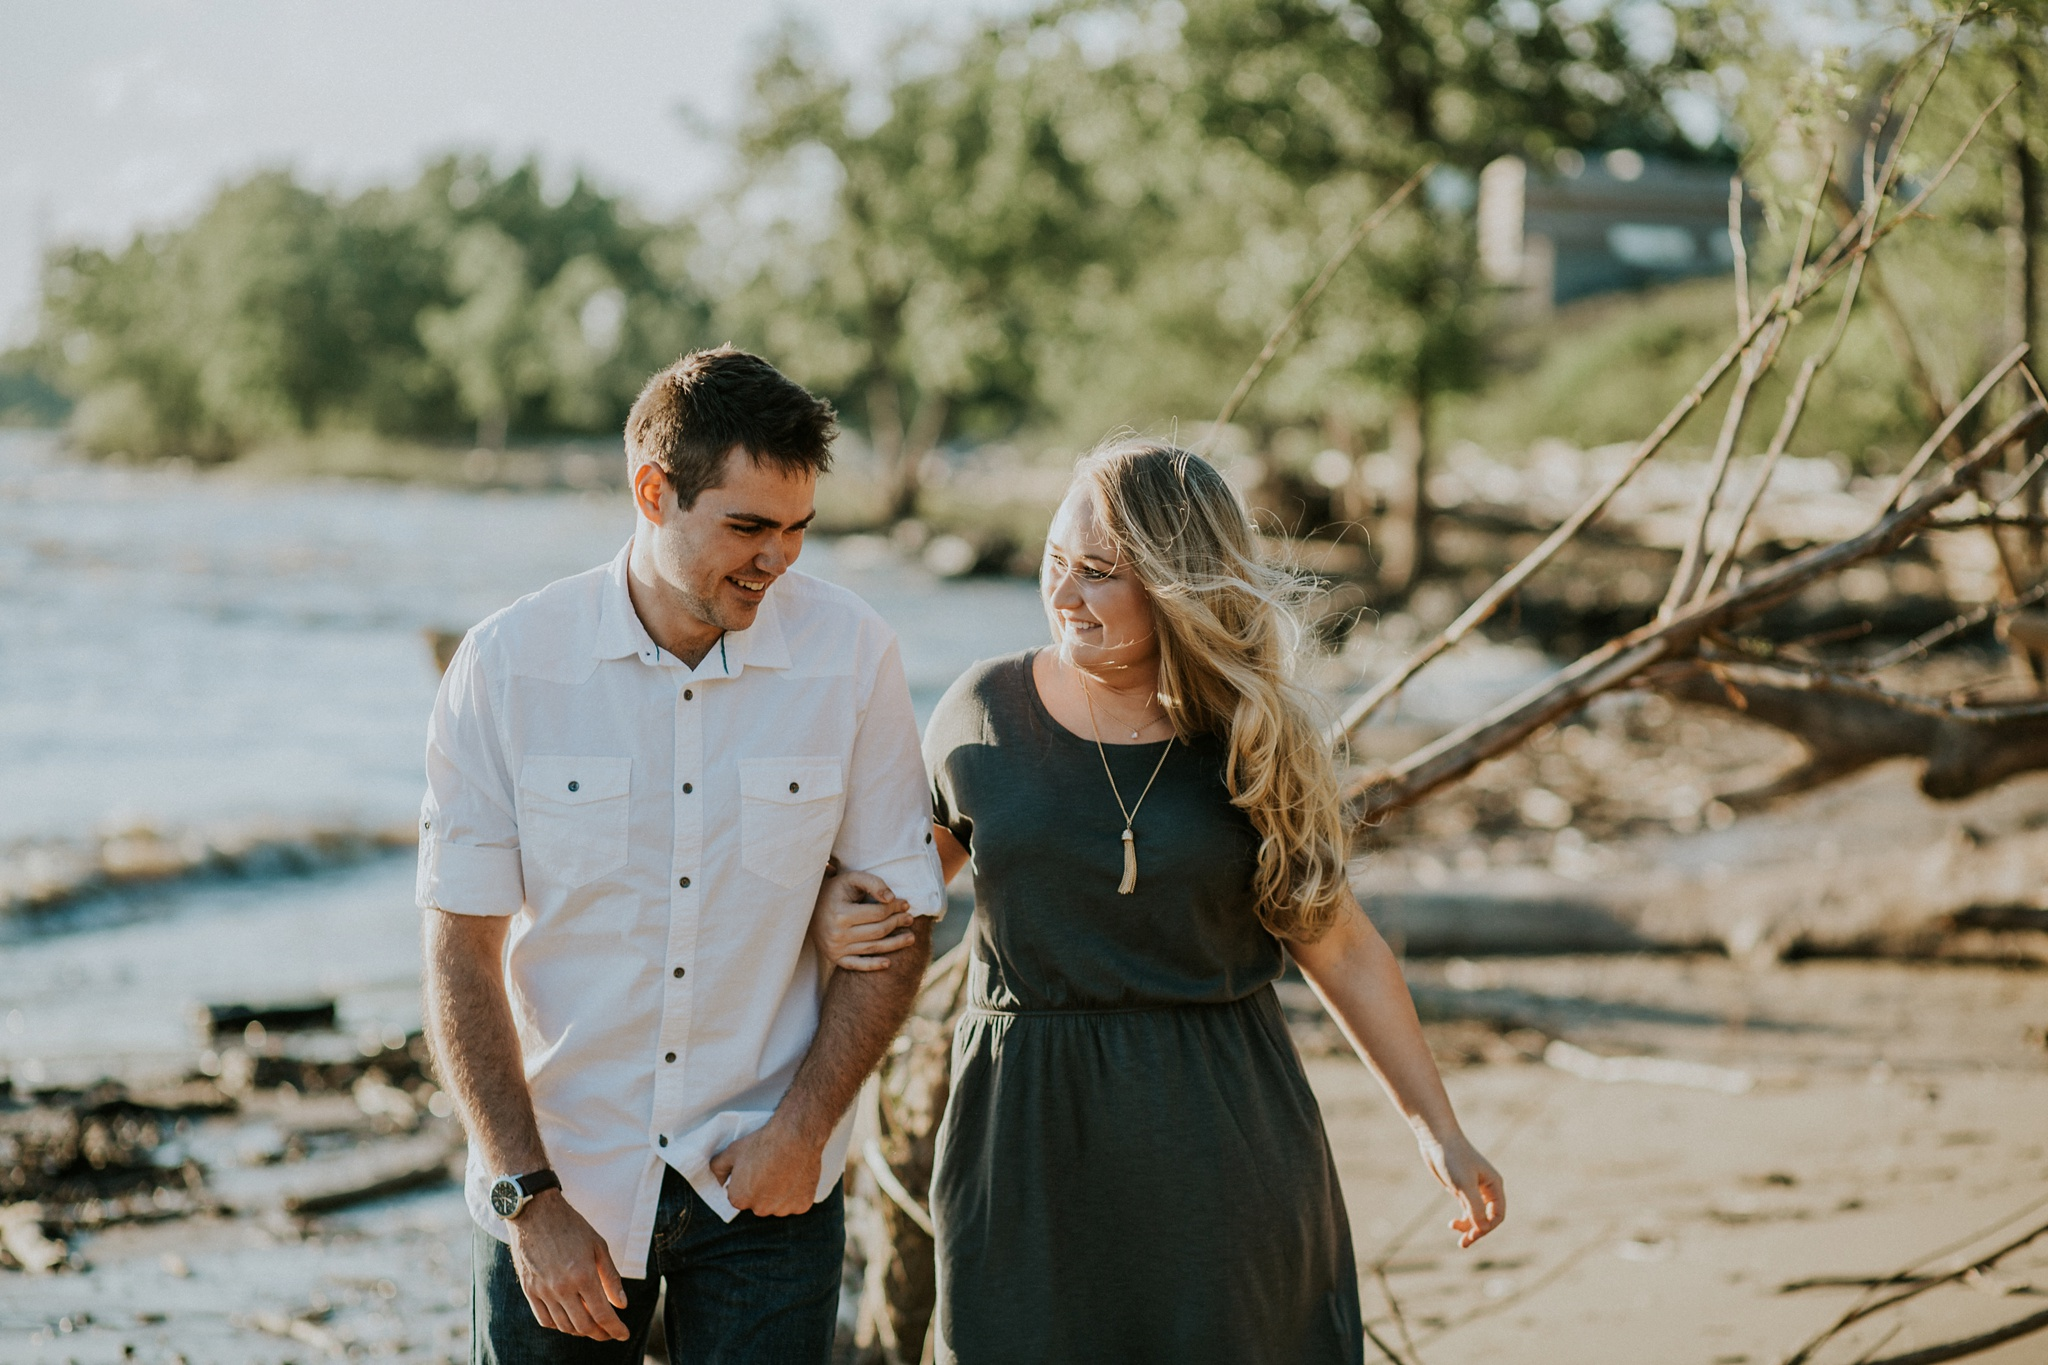 Louisville New Albany Engagement Photographer_0014.jpg